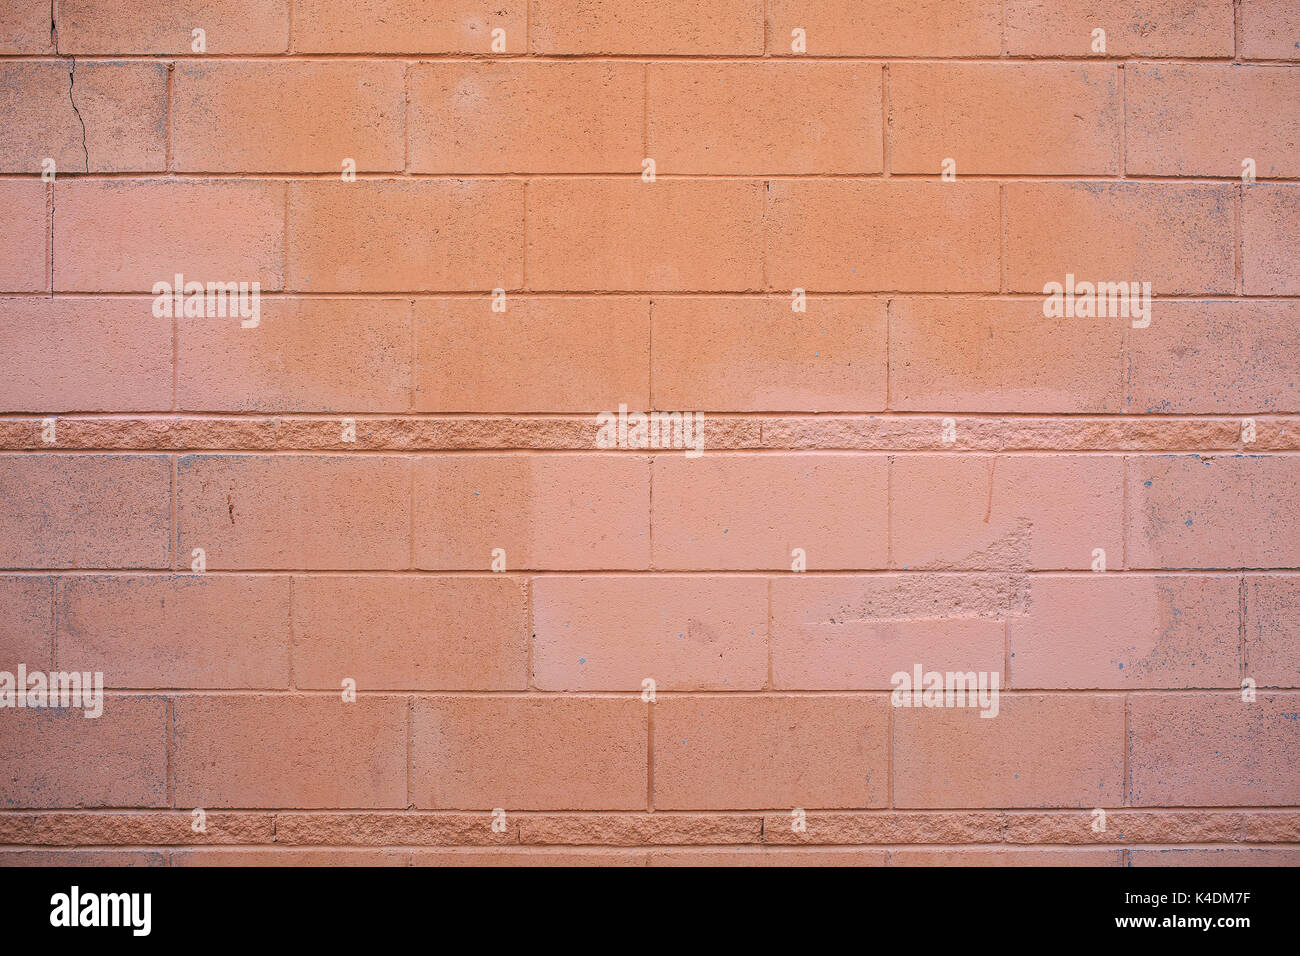 Real stone wall texture photography - Stock Image